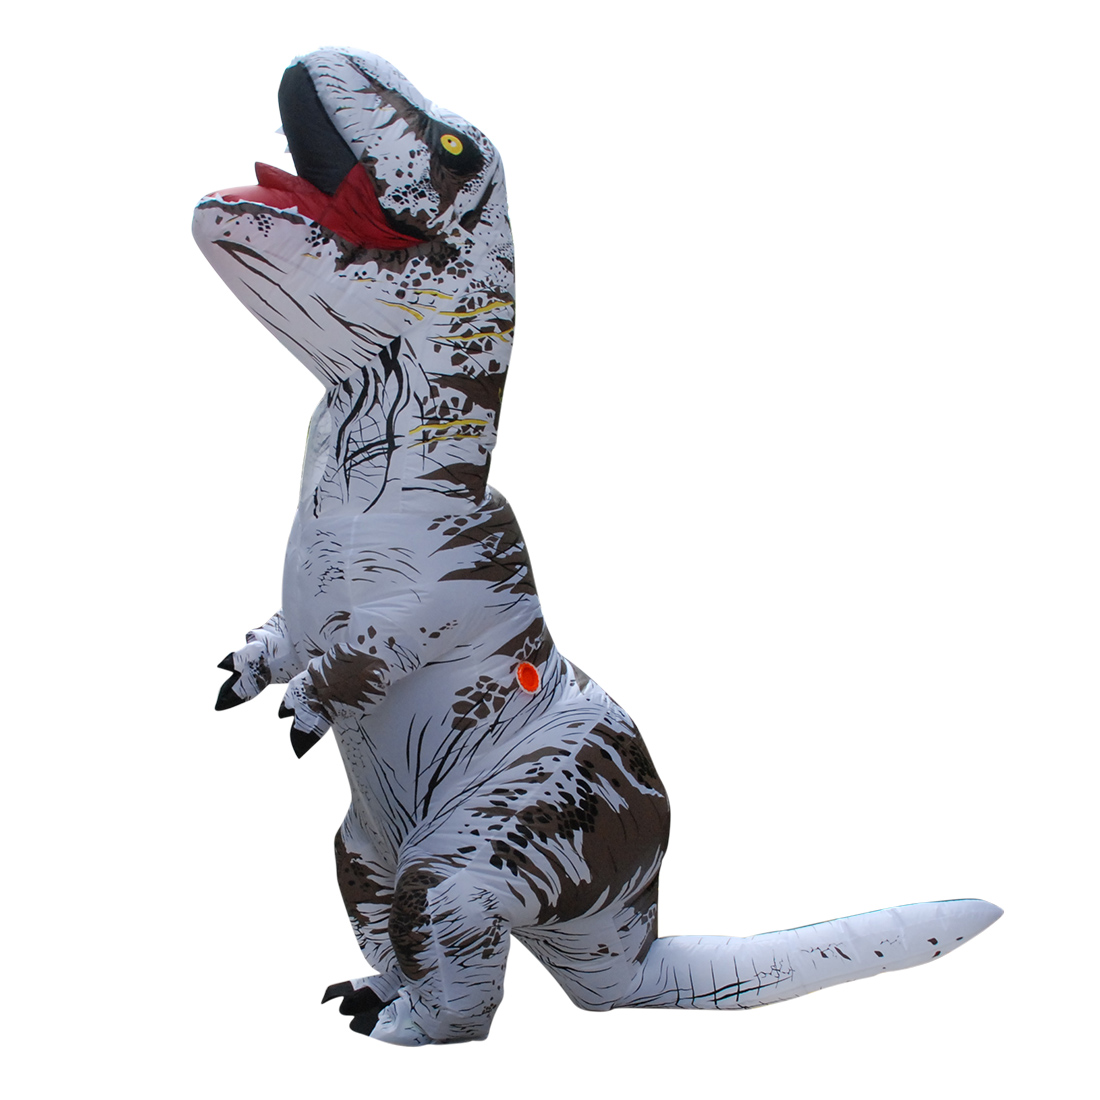 DANXEN Adult White T-REX INFLATABLE Dinosaur Costume Costumes of Men